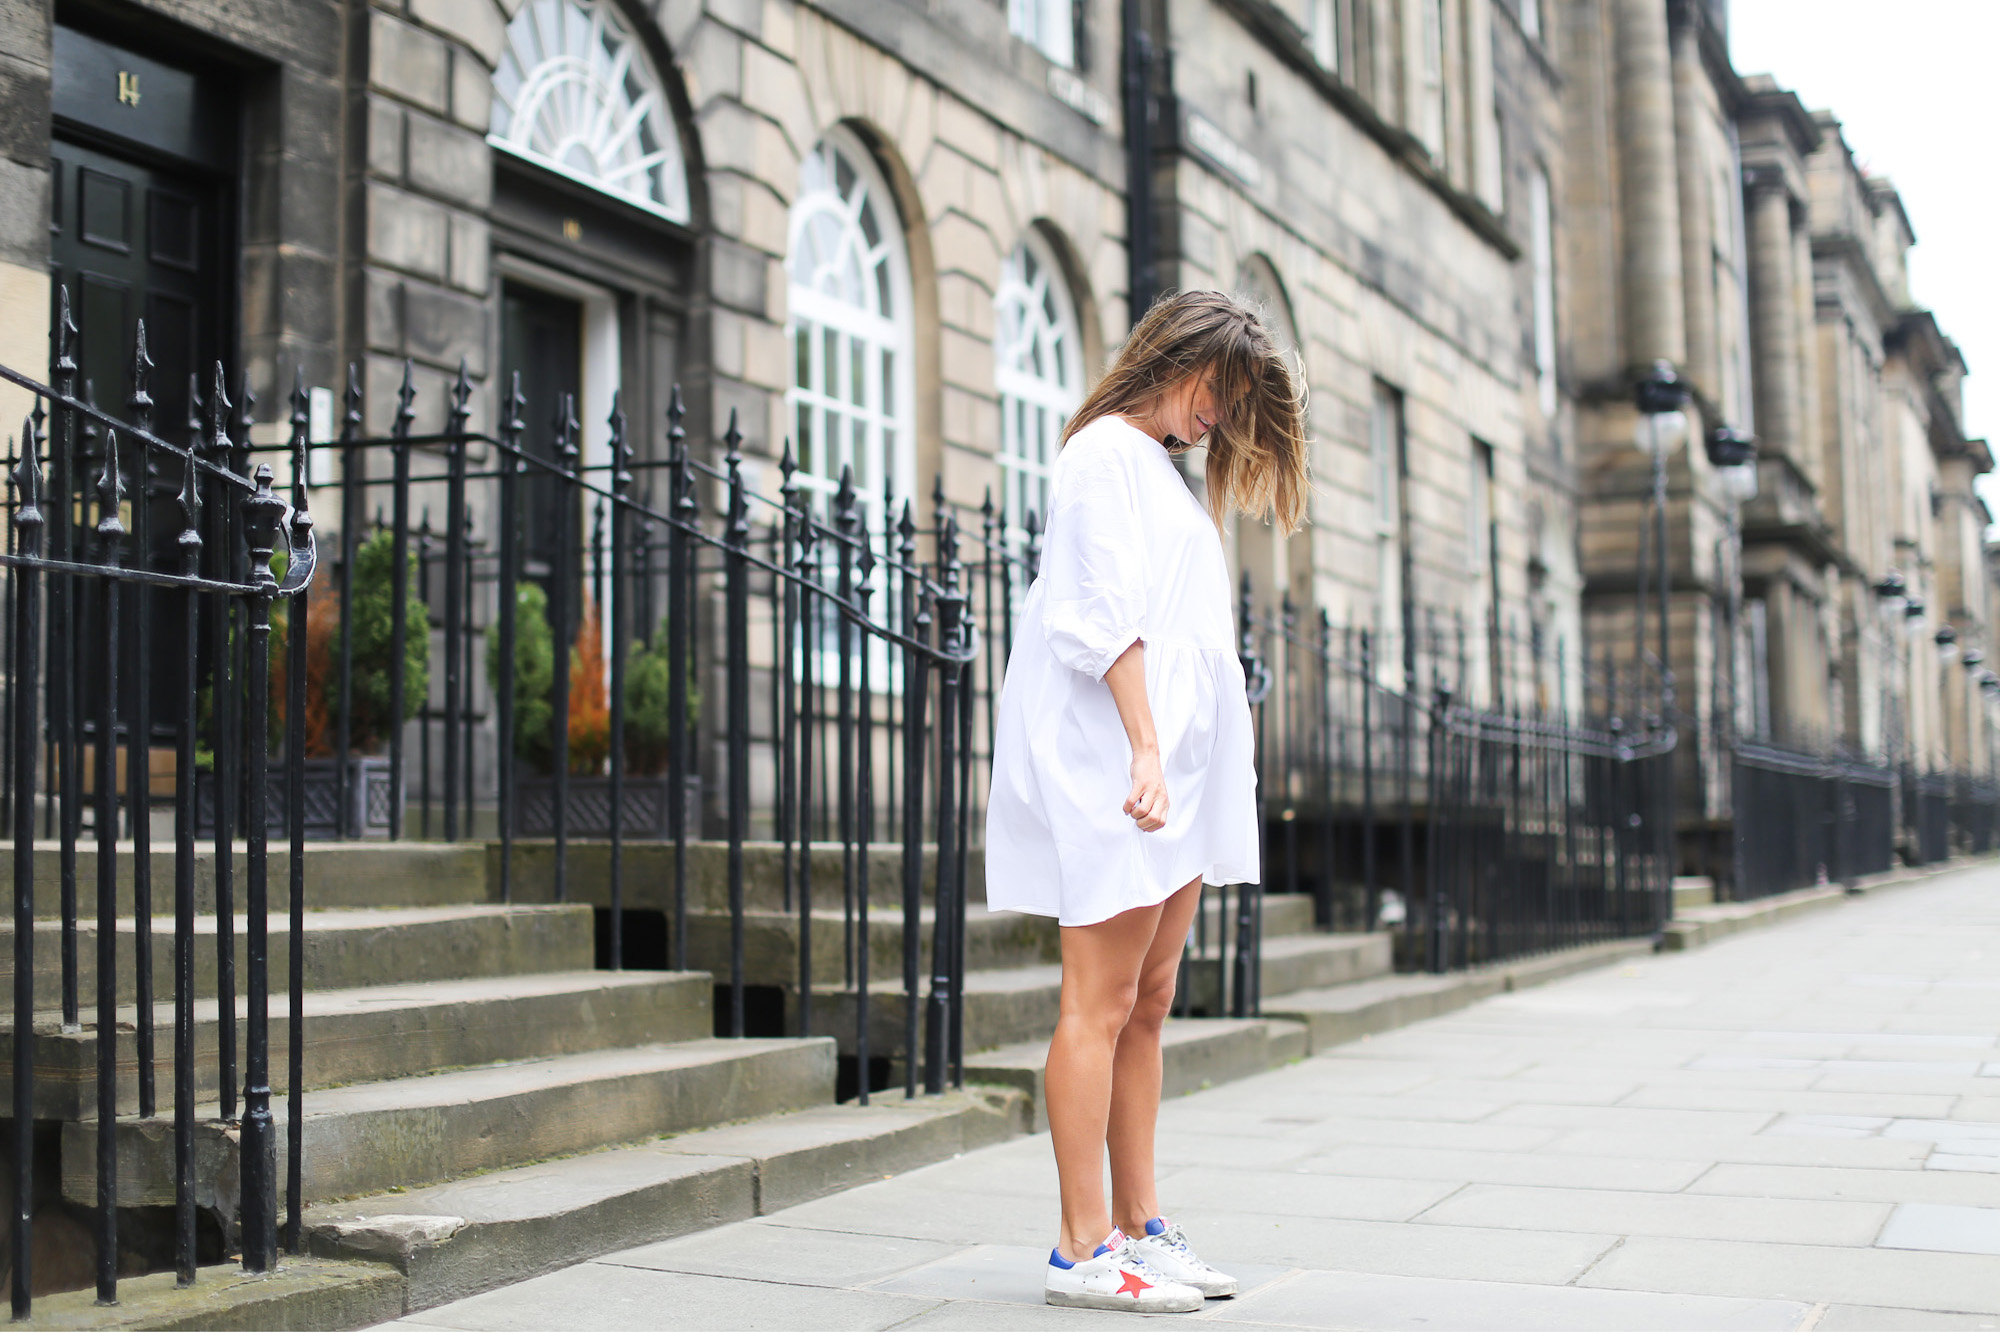 Clochet_streetstyle_zara_littlewhitedress_goldengoosedeluxesneakers_edinburgh-3